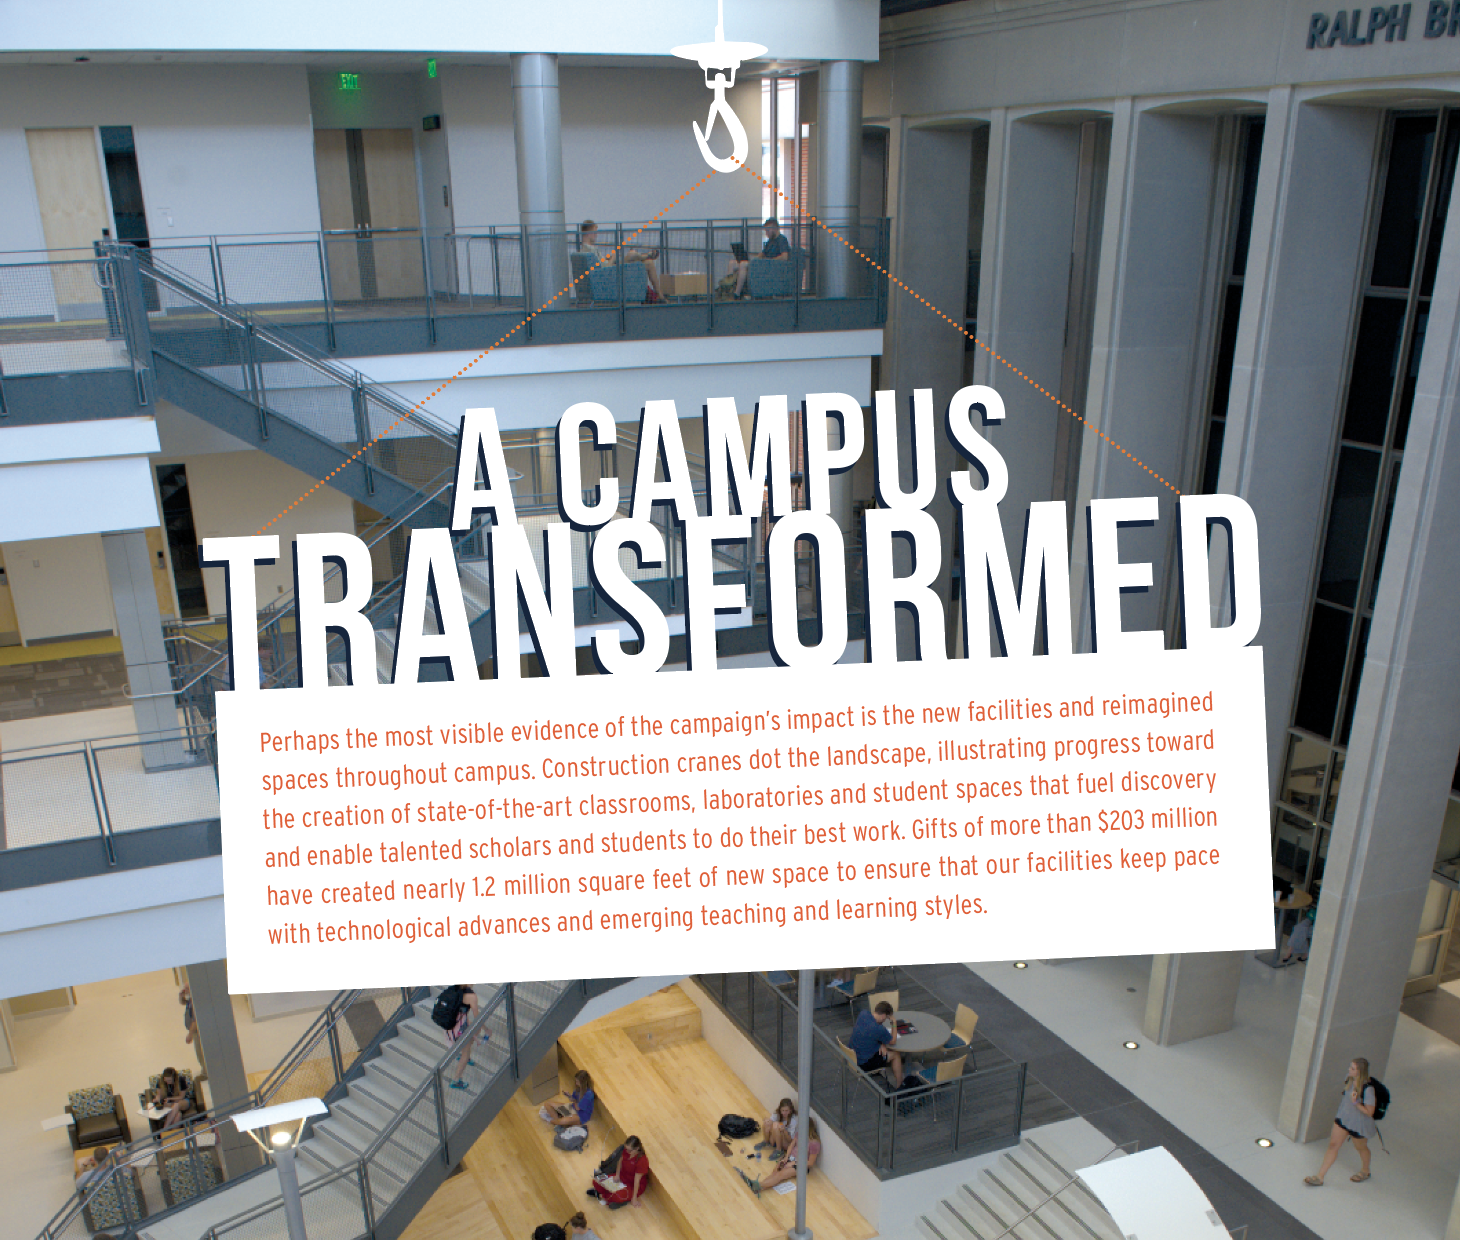 A Campus Transformed; Perhaps the most visible evidence of the campaign's impact is the new facilities and reimagined spaces throughout campus. Construction cranes dot the landscape, illustrating progress toward the creation of state-of-the-art classrooms, laboratories and student spaces that fuel discovery and enable talented scholars and students to do their best work. Gifts of more than $203 million have created nearly 1.2 million square feet of new space to ensure that our facilities keep pace with technological advances and emerging teaching and learning styles.